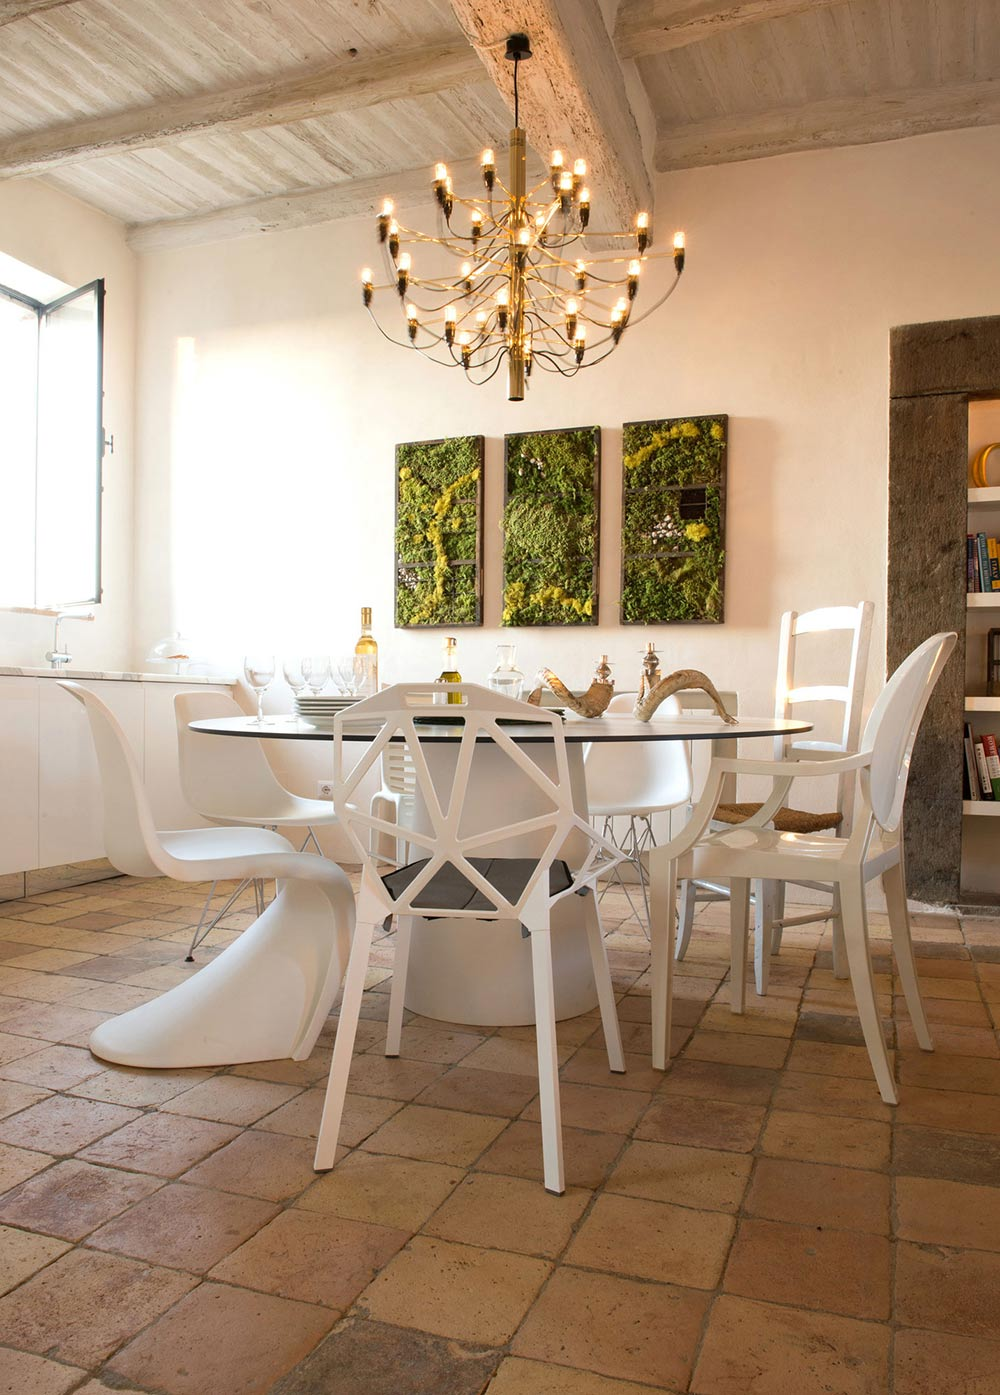 Dining Table, Lighting, Stunning Renovation in Civita di Bagnoregio by Studio F